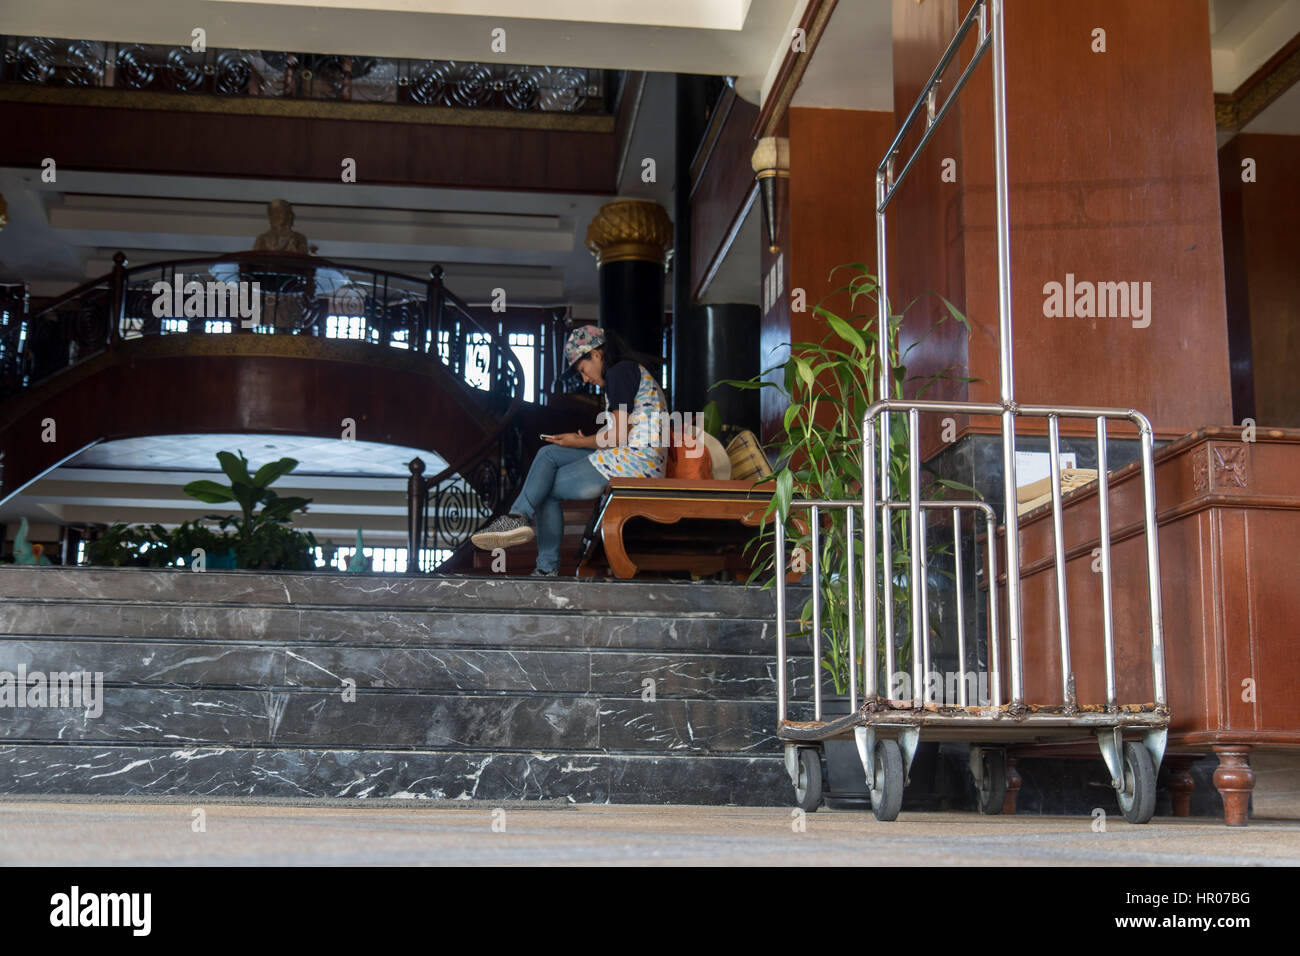 Entrance to the hotel with luggage trolleys - Stock Image